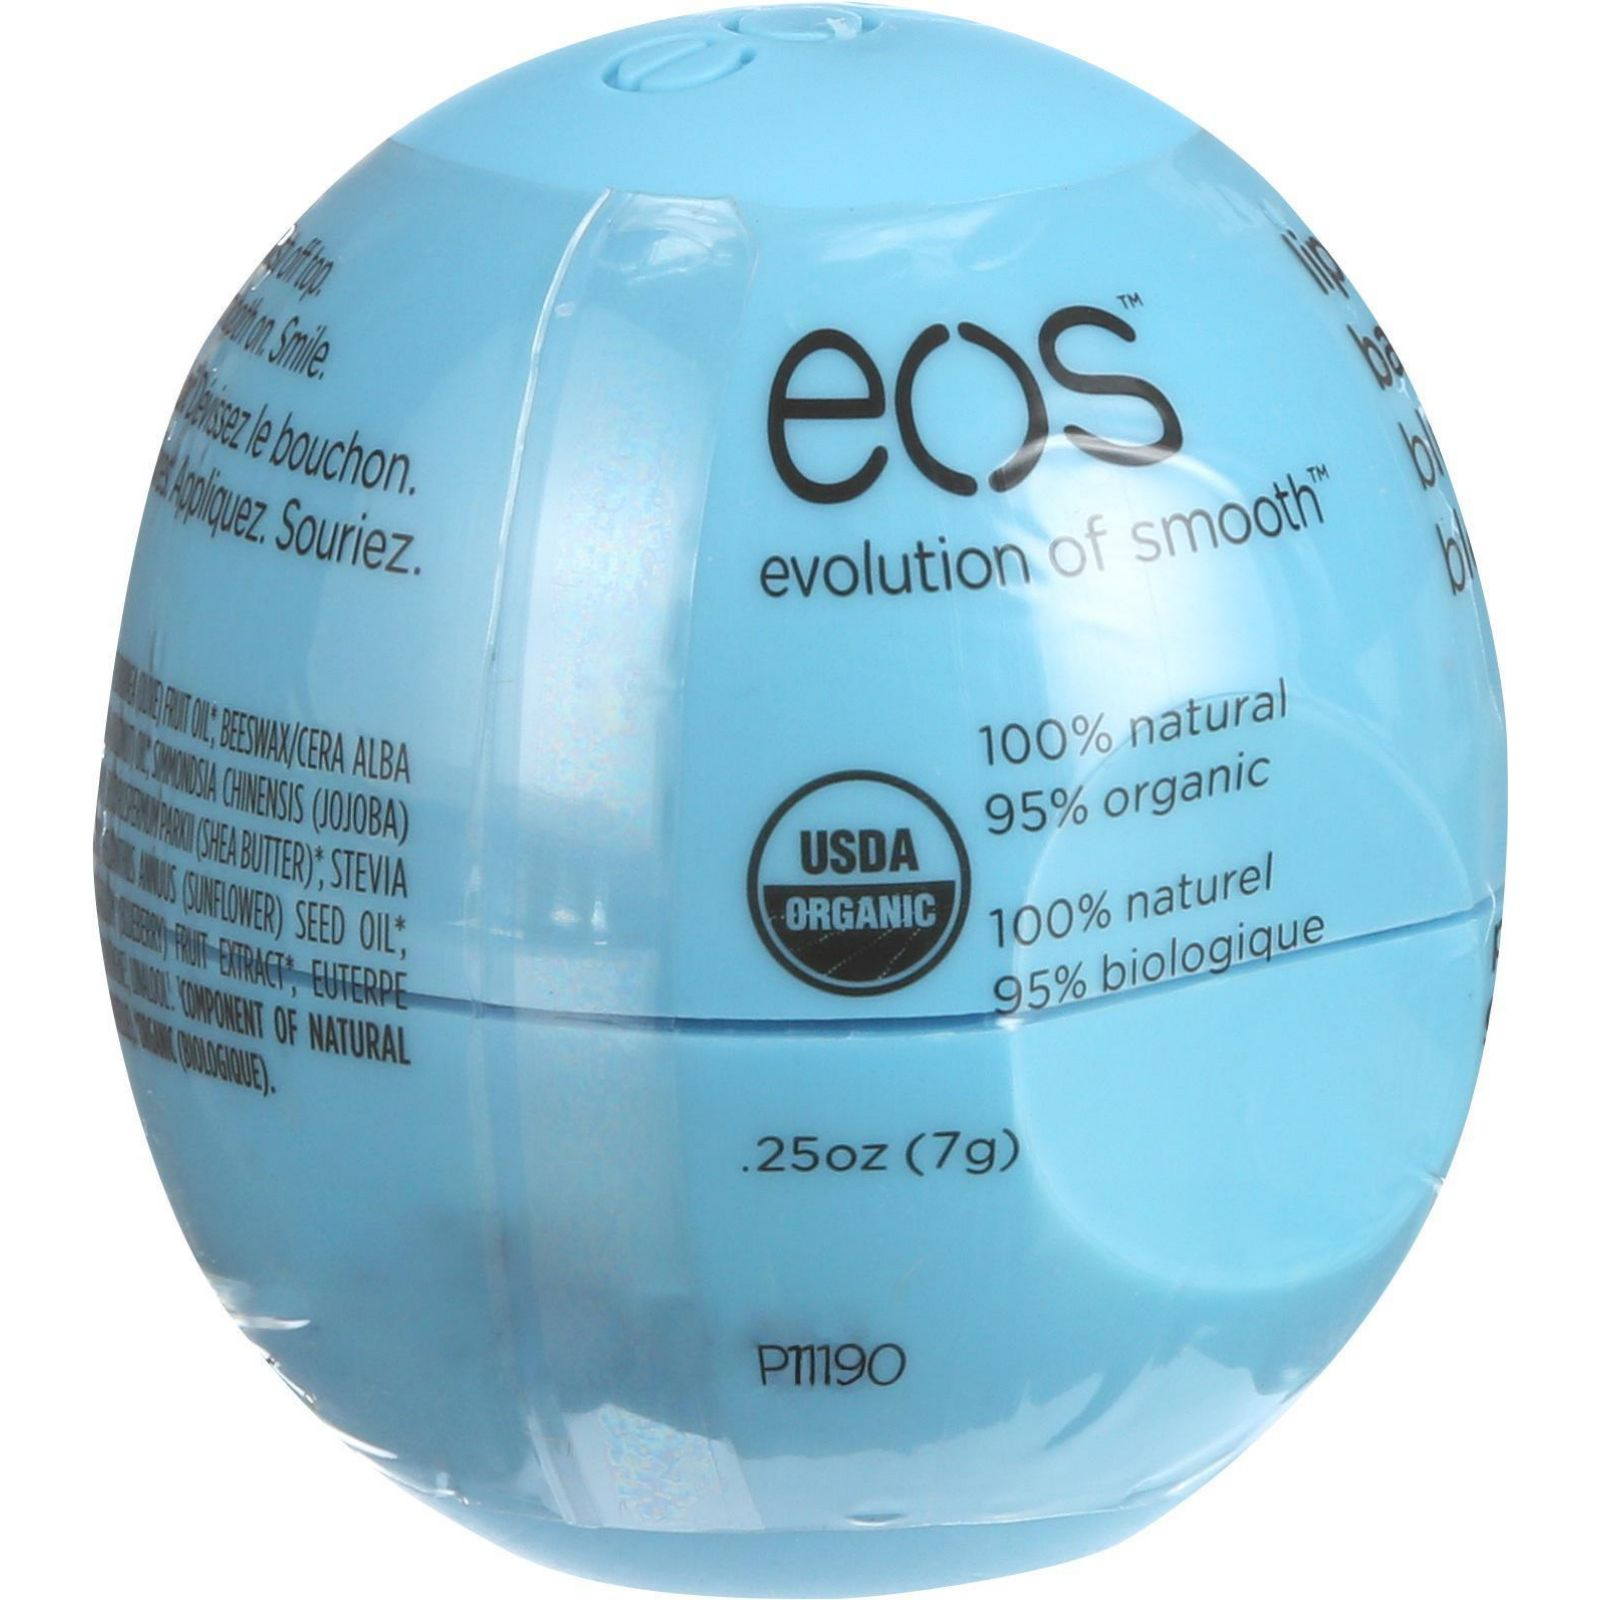 Eos Products Lip Balm  Smooth Sphere  Organic  Blueberry Acai  .25 oz  Case of 8